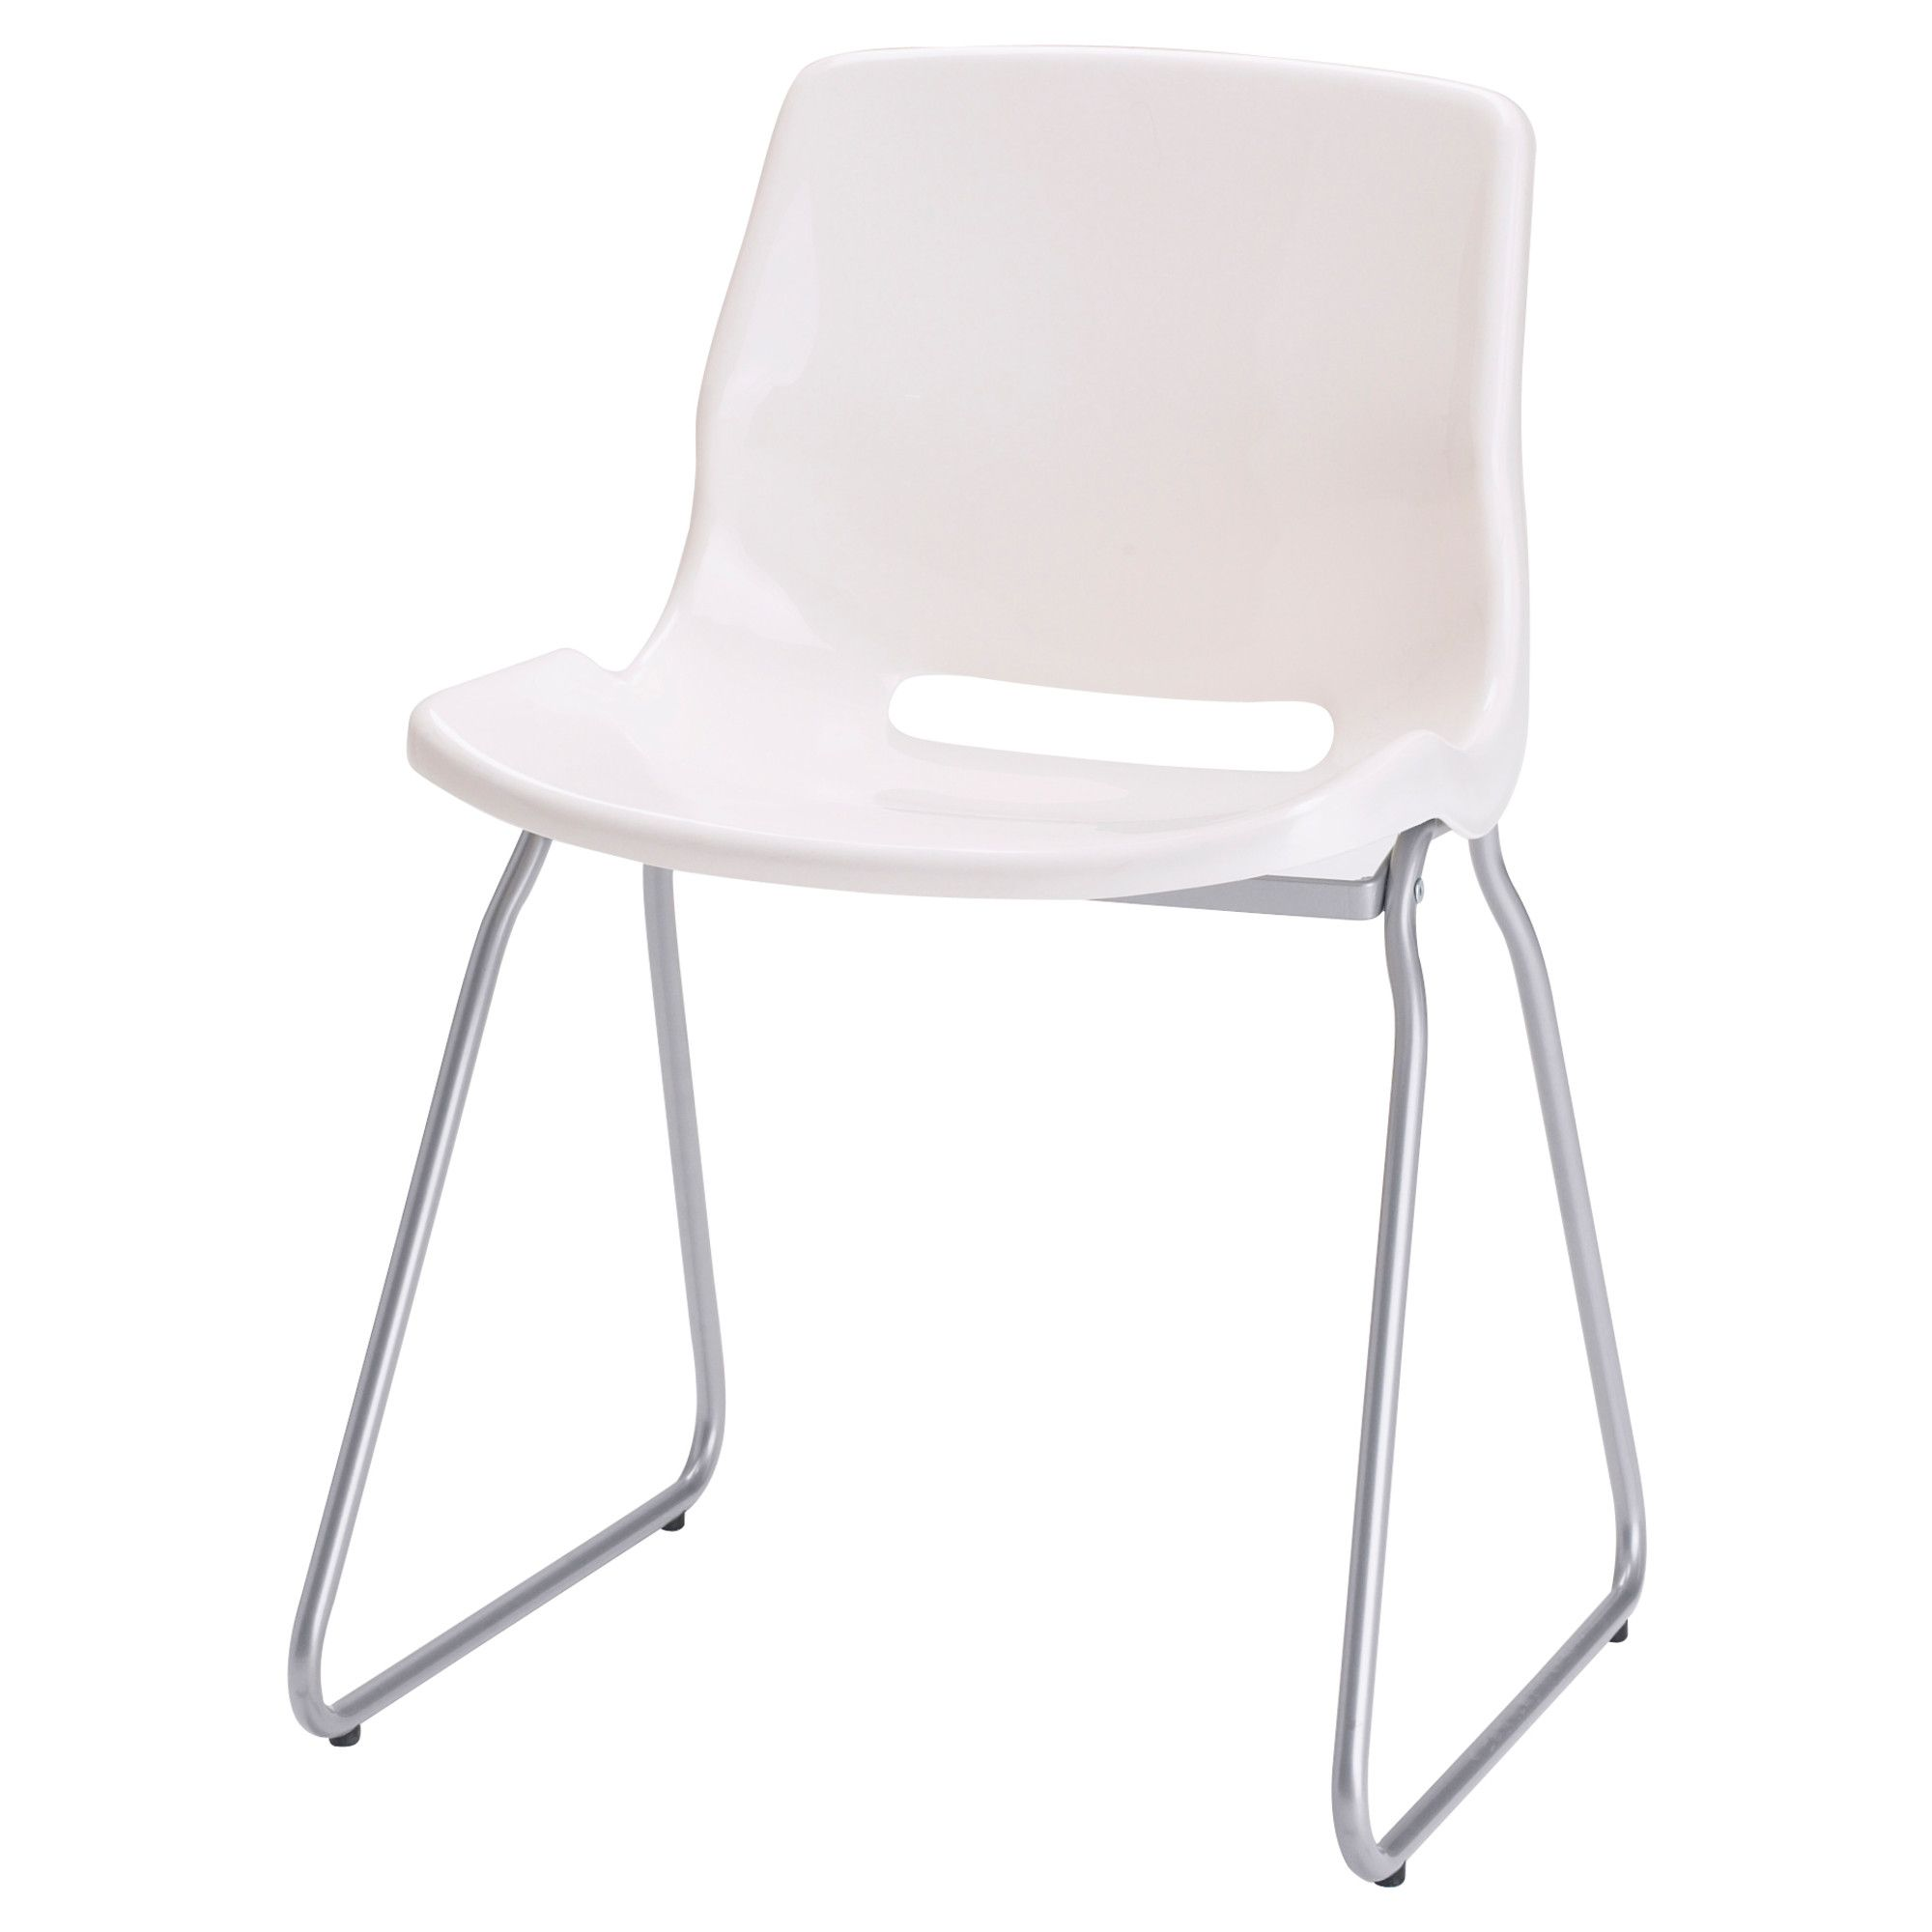 ghost chair knock off tables and chairs rentals affordable snille visitor white ikea with chaise